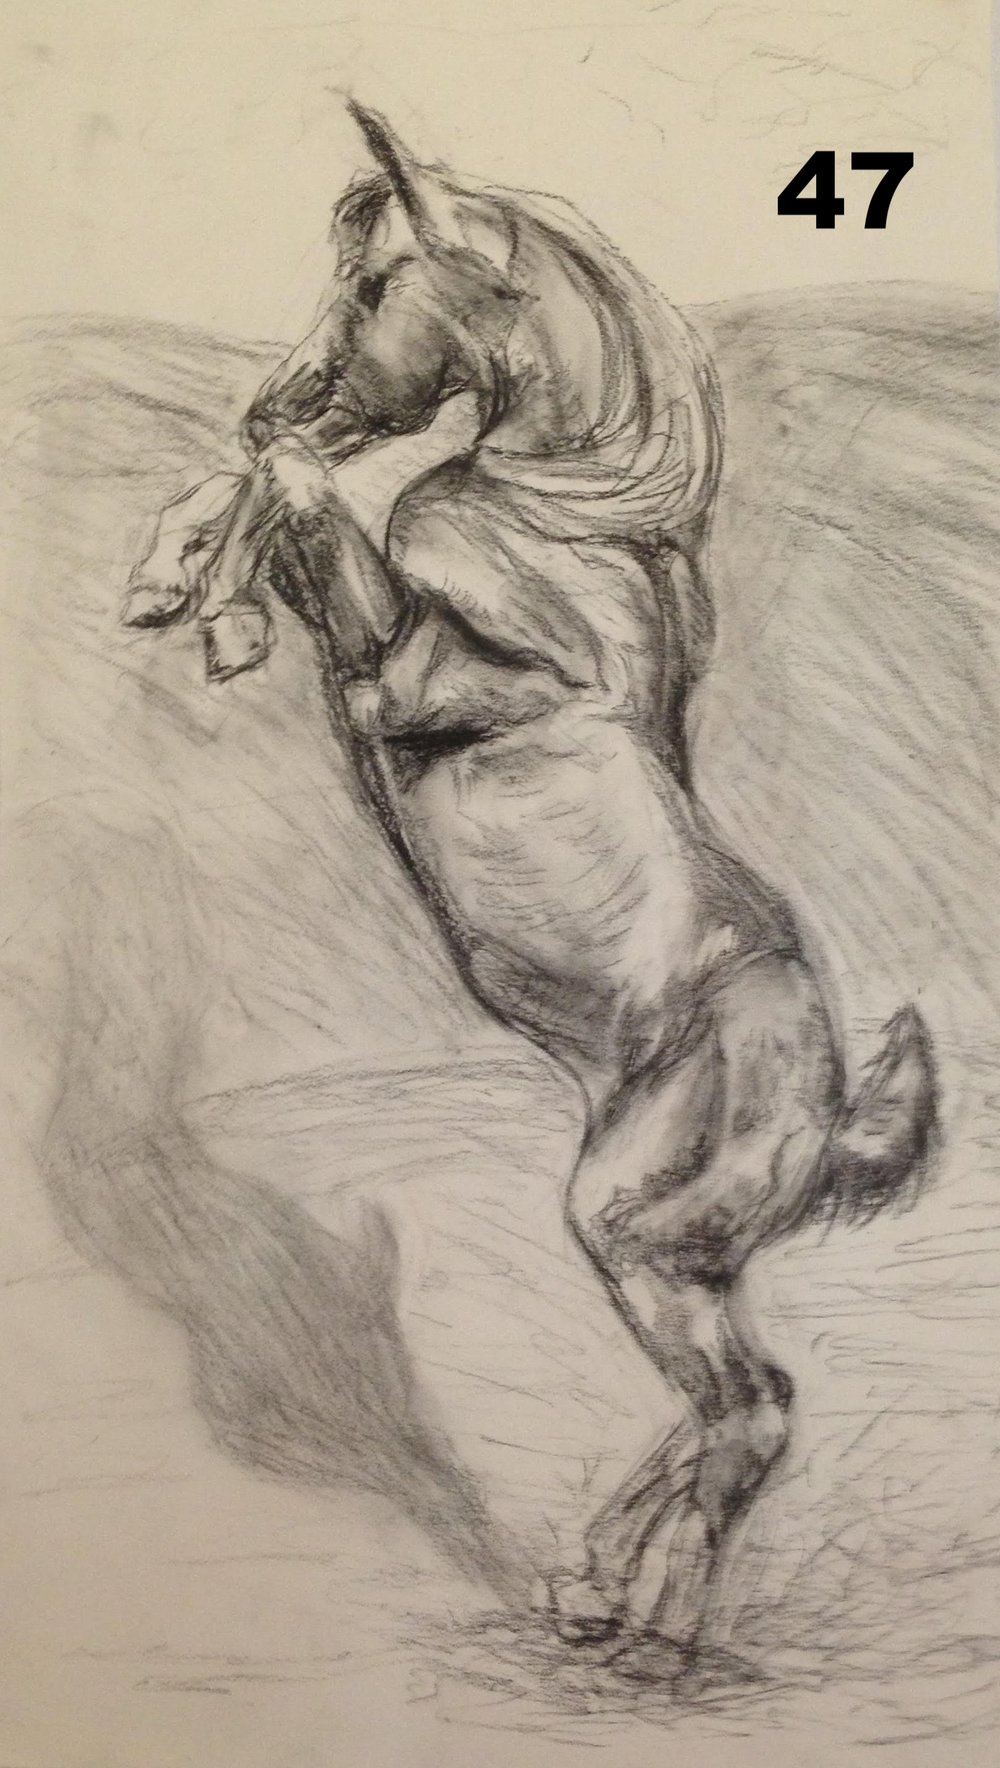 Dancing, Charcoal on paper.